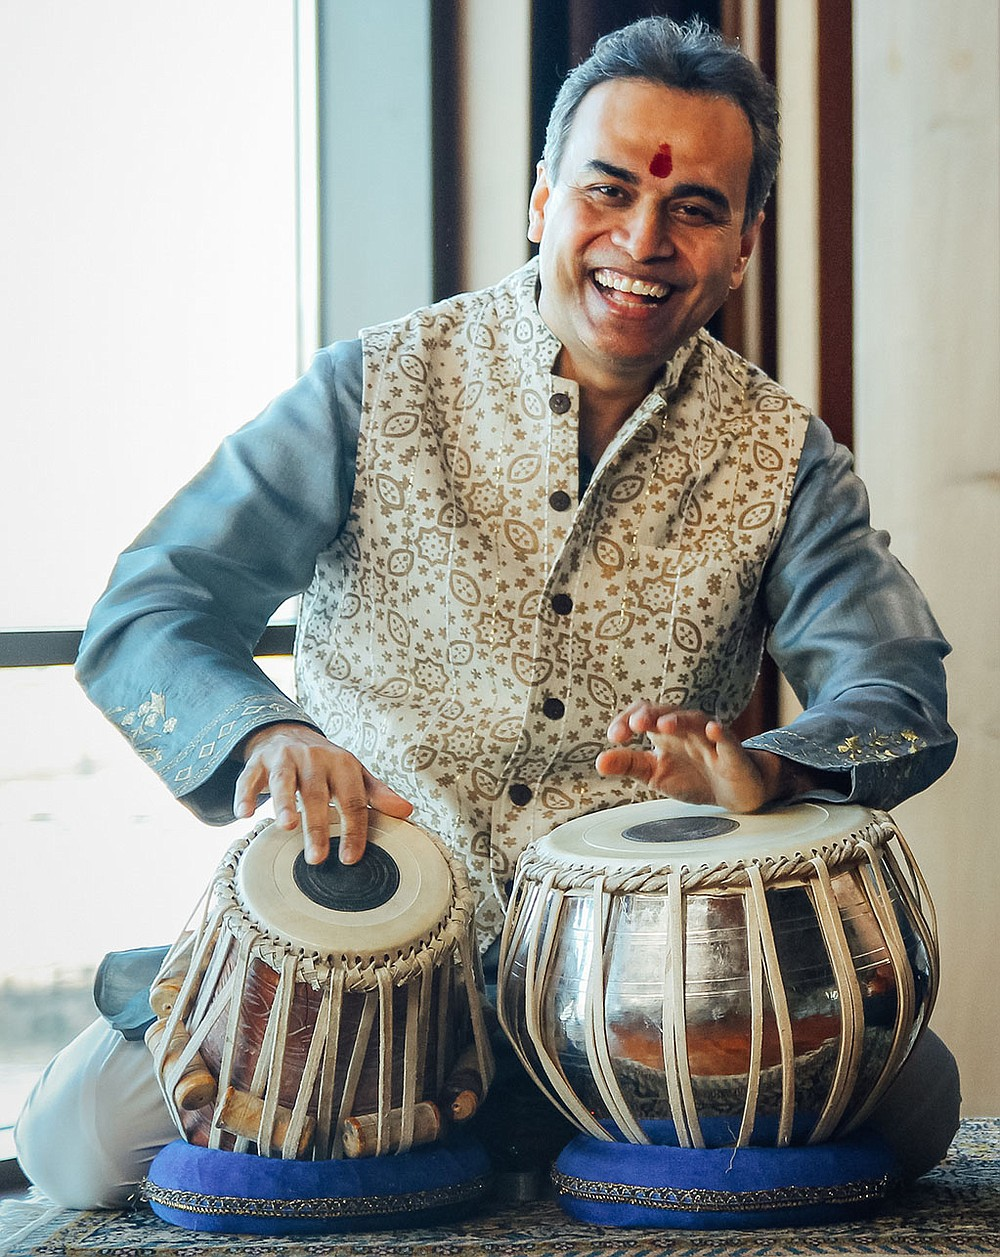 """SoNA's 2021-22 season will highlight principal clarinetist Trevor Stewart, featured in November on Mozart's Clarinet Concerto; Canadian pianist and composer Heather Schmidt, in Fayetteville for her Arkansas premiere of """"Phoenix Ascending"""" in January; and international tabla maestro Sandeep Das in February for a performance of Dinuk Wijeratne's Tabla Concerto.  (Courtesy Photos)"""